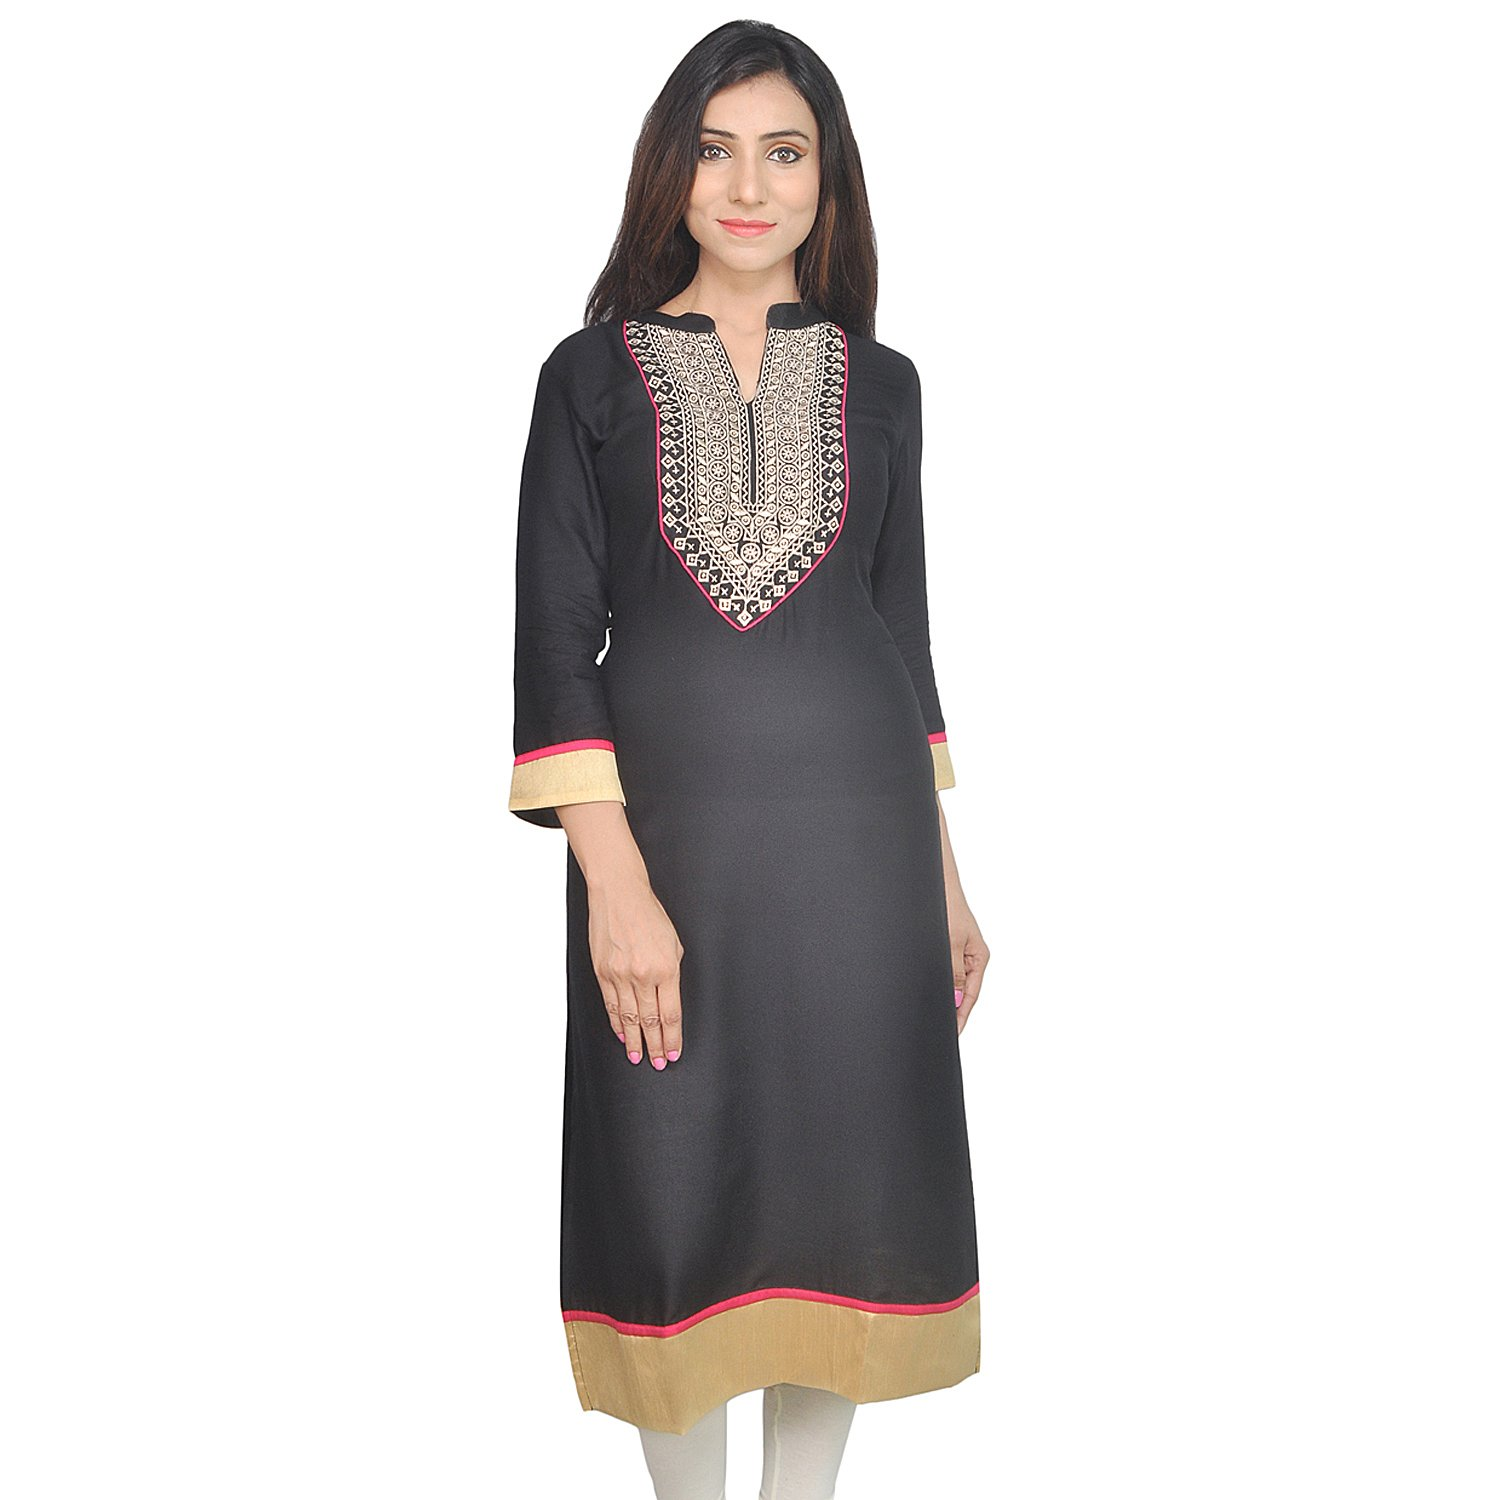 2d0220910e Get Quotations · Chichi Women 3/4 Sleeve Tunic Top Embroidered Kurti Blouse  Black